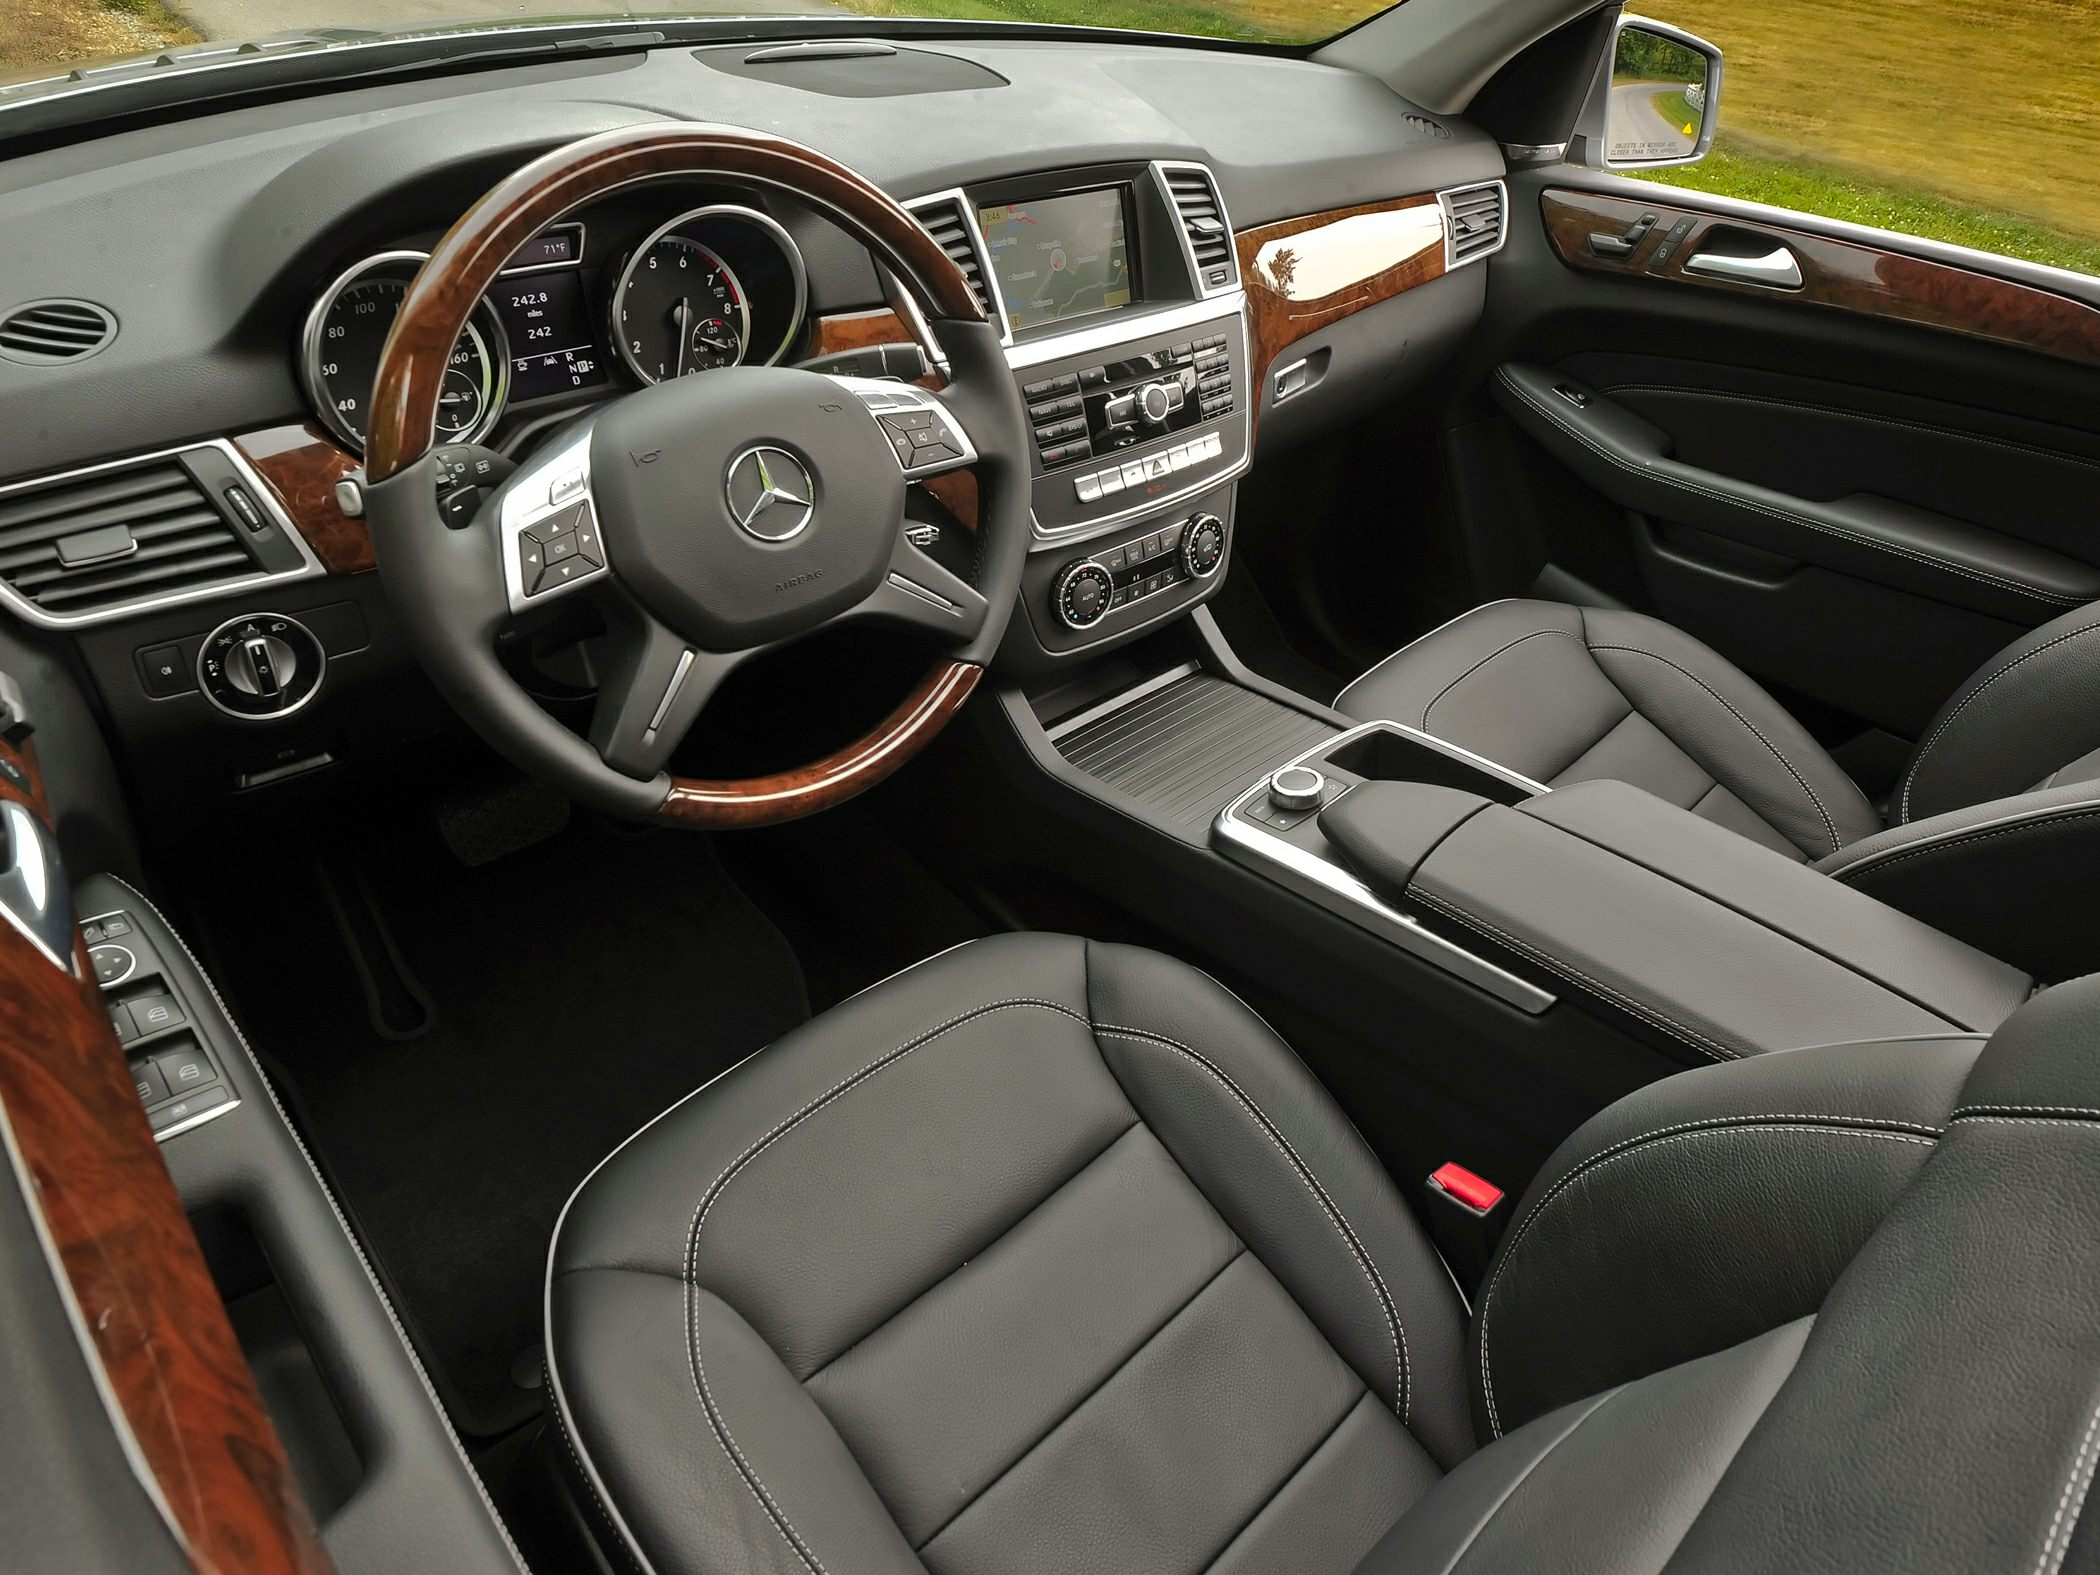 2014 Mercedes-Benz ML350 Interior